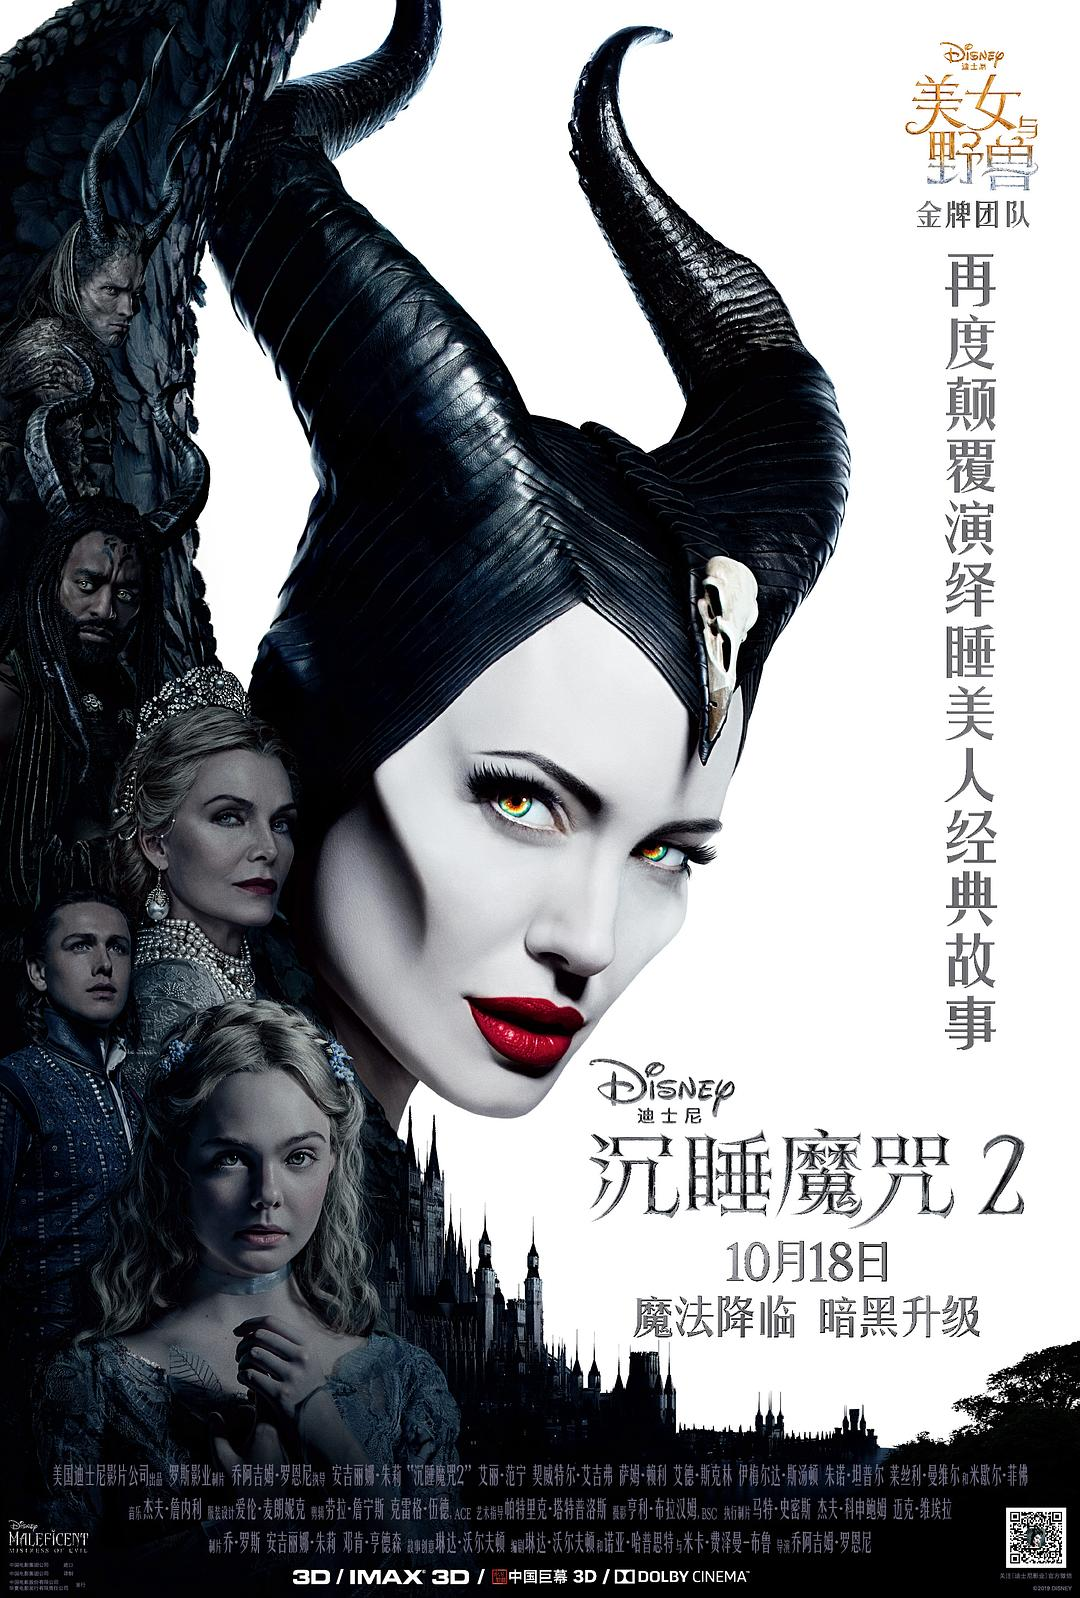 悠悠MP4_MP4电影下载_沉睡魔咒2 Maleficent.Mistress.of.Evil.2019.1080p.3D.BluRay.Half-OU.x264.DTS-HD.MA.7.